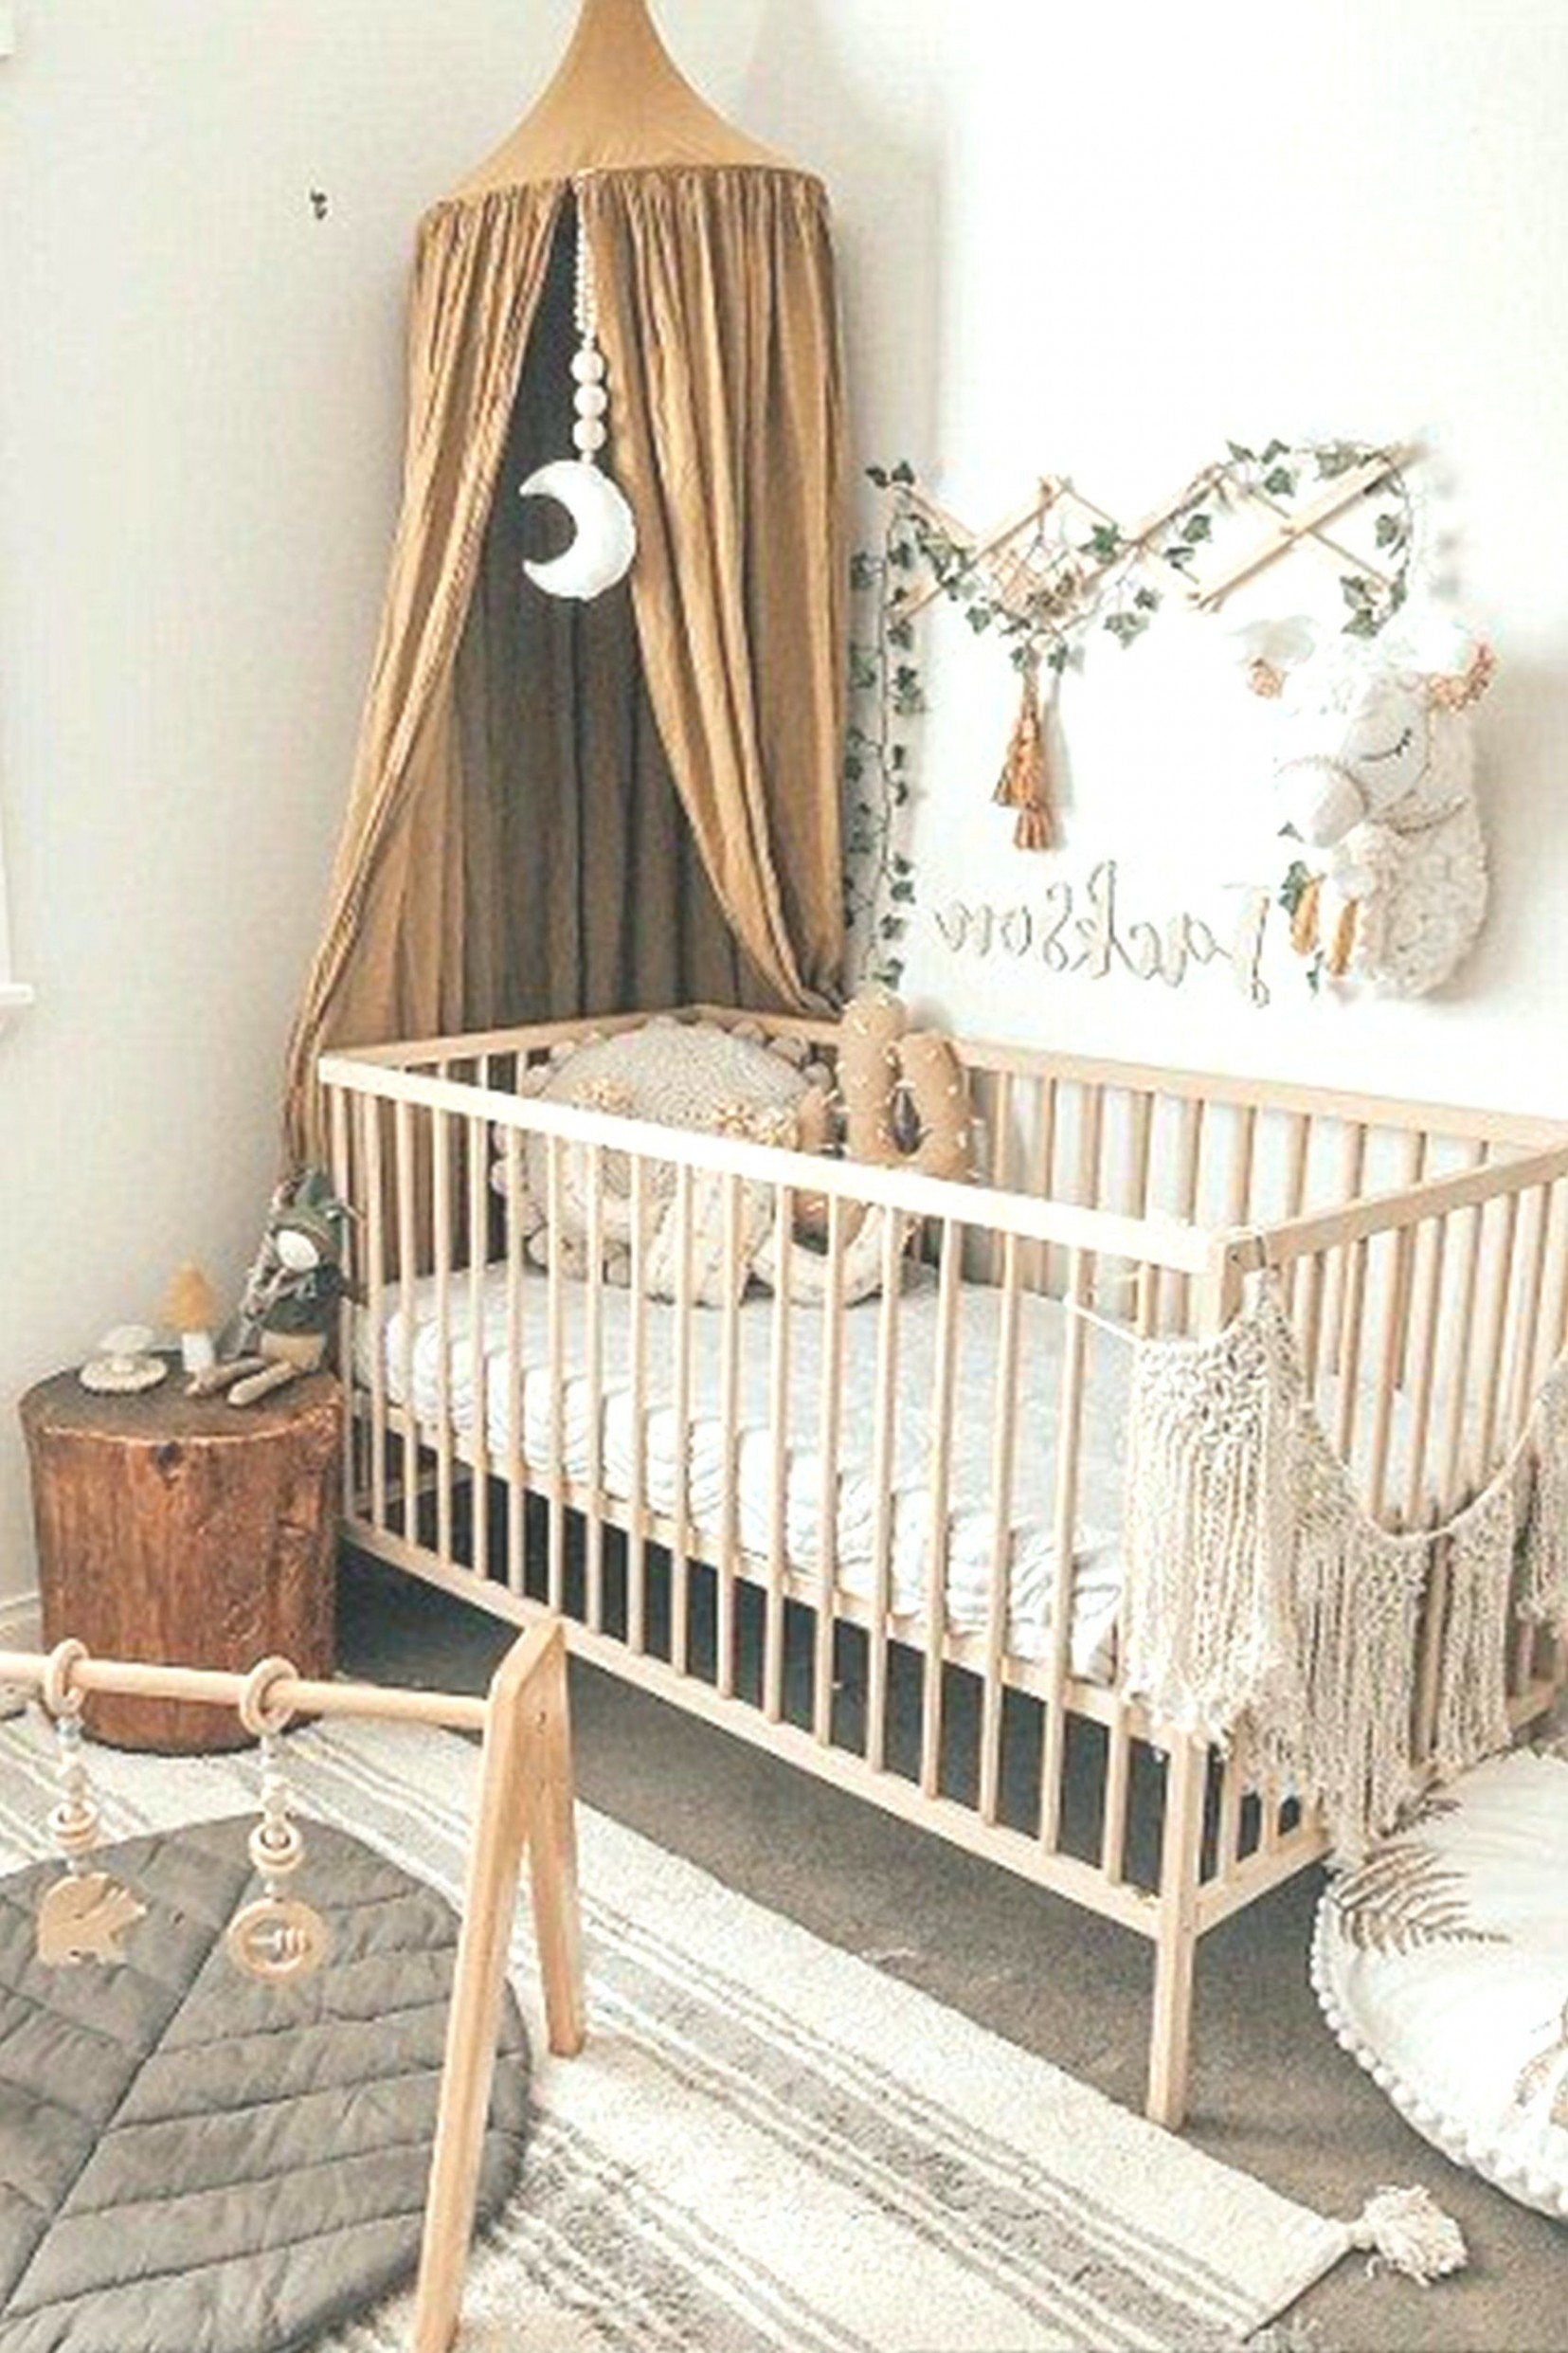 Babyzimmer in 12  Room, Decor, Jungle decorations - Baby Room Ornaments